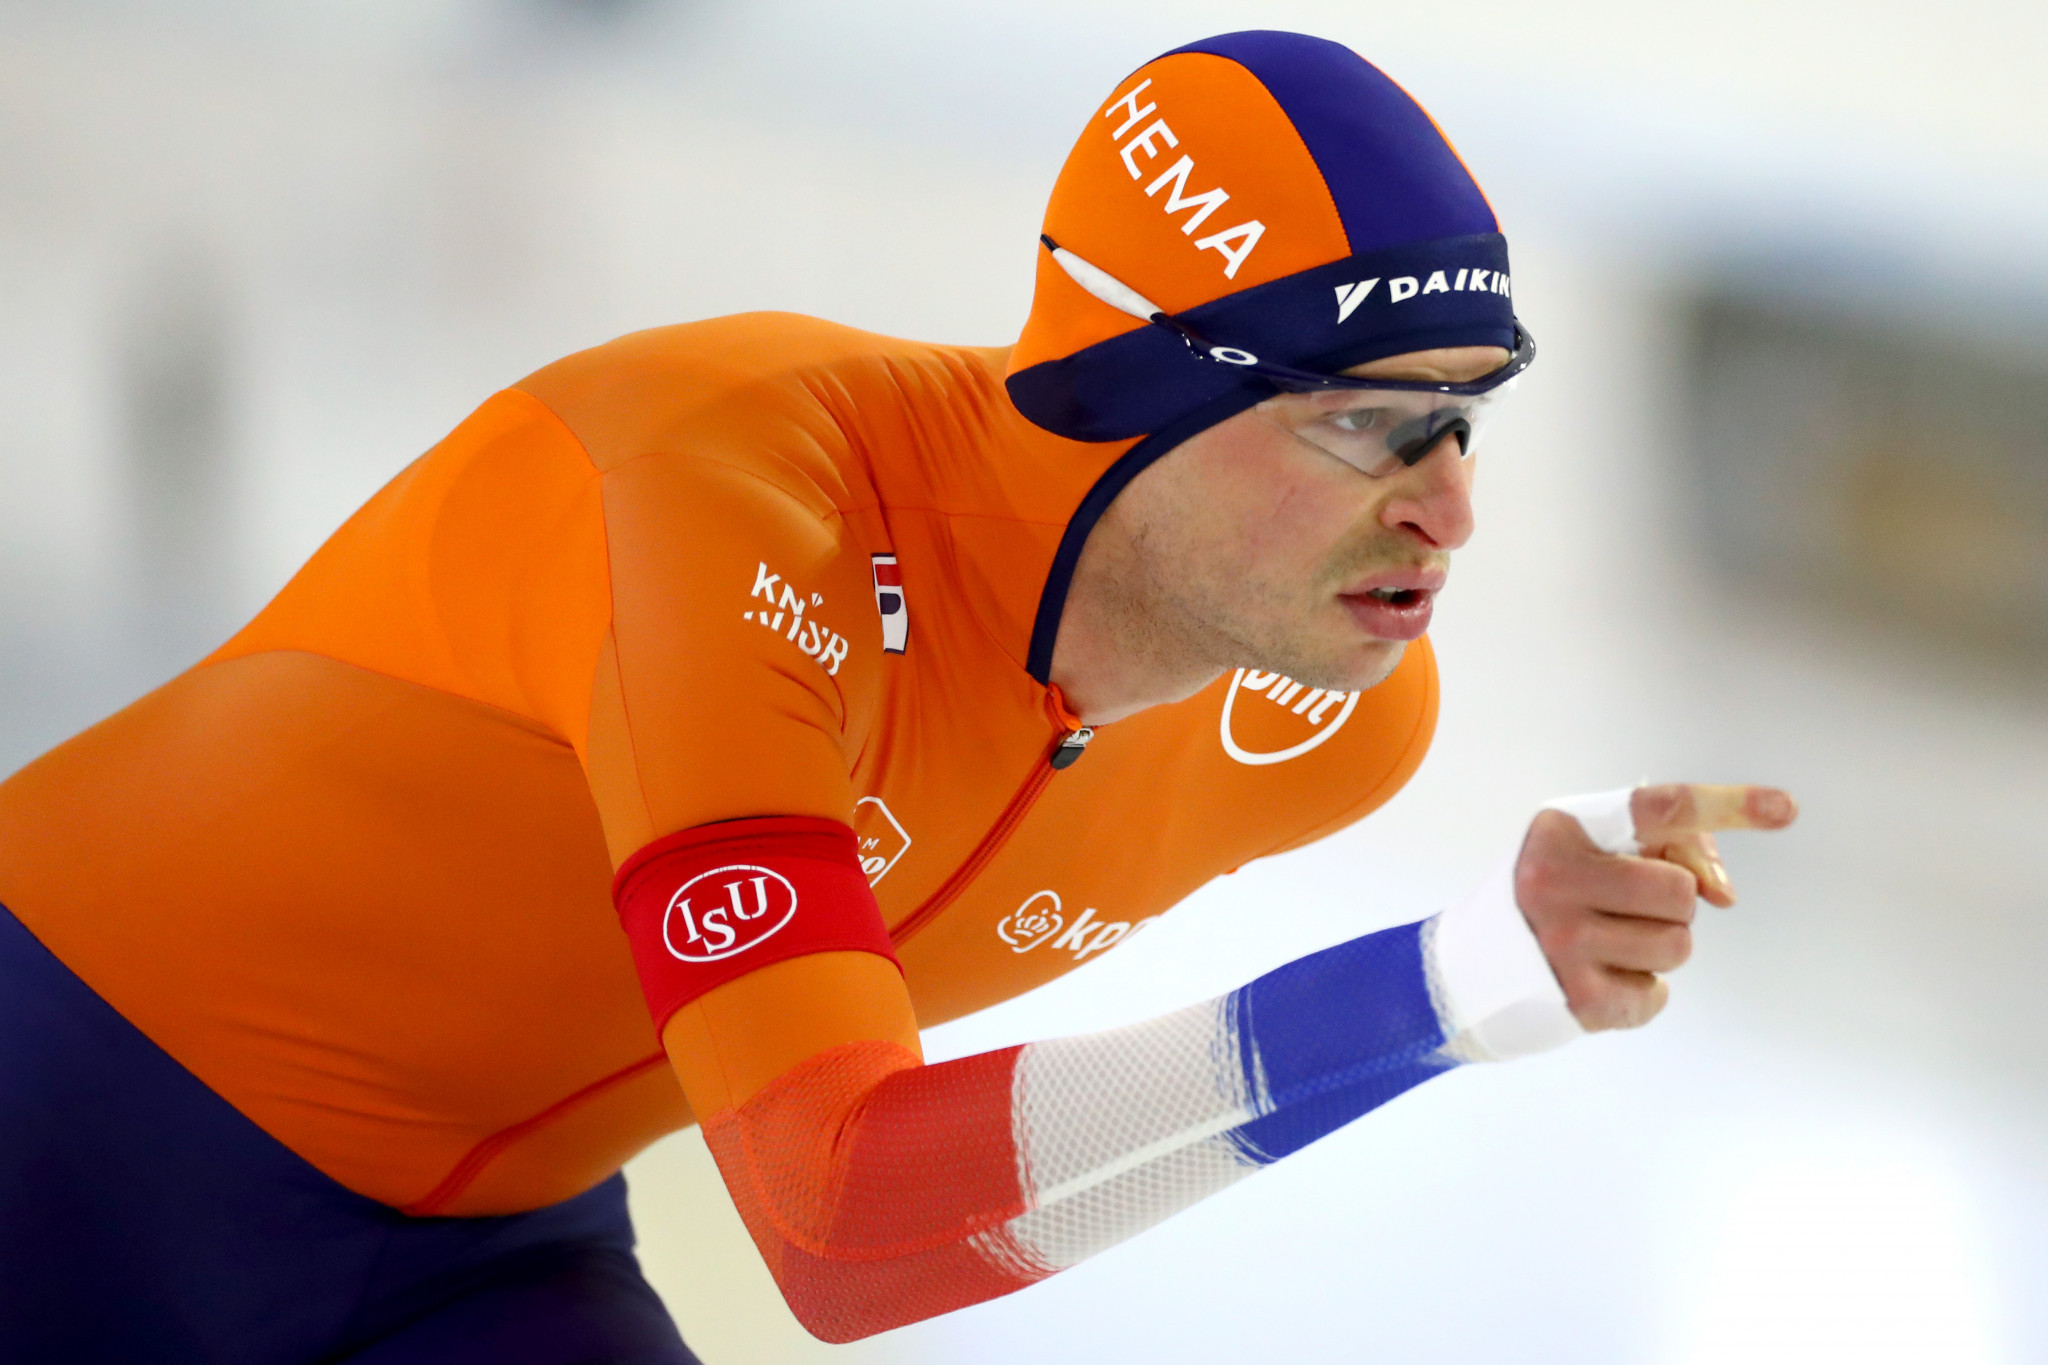 Sven Kramer is competing for only the second time this season in Calgary ©Getty Images